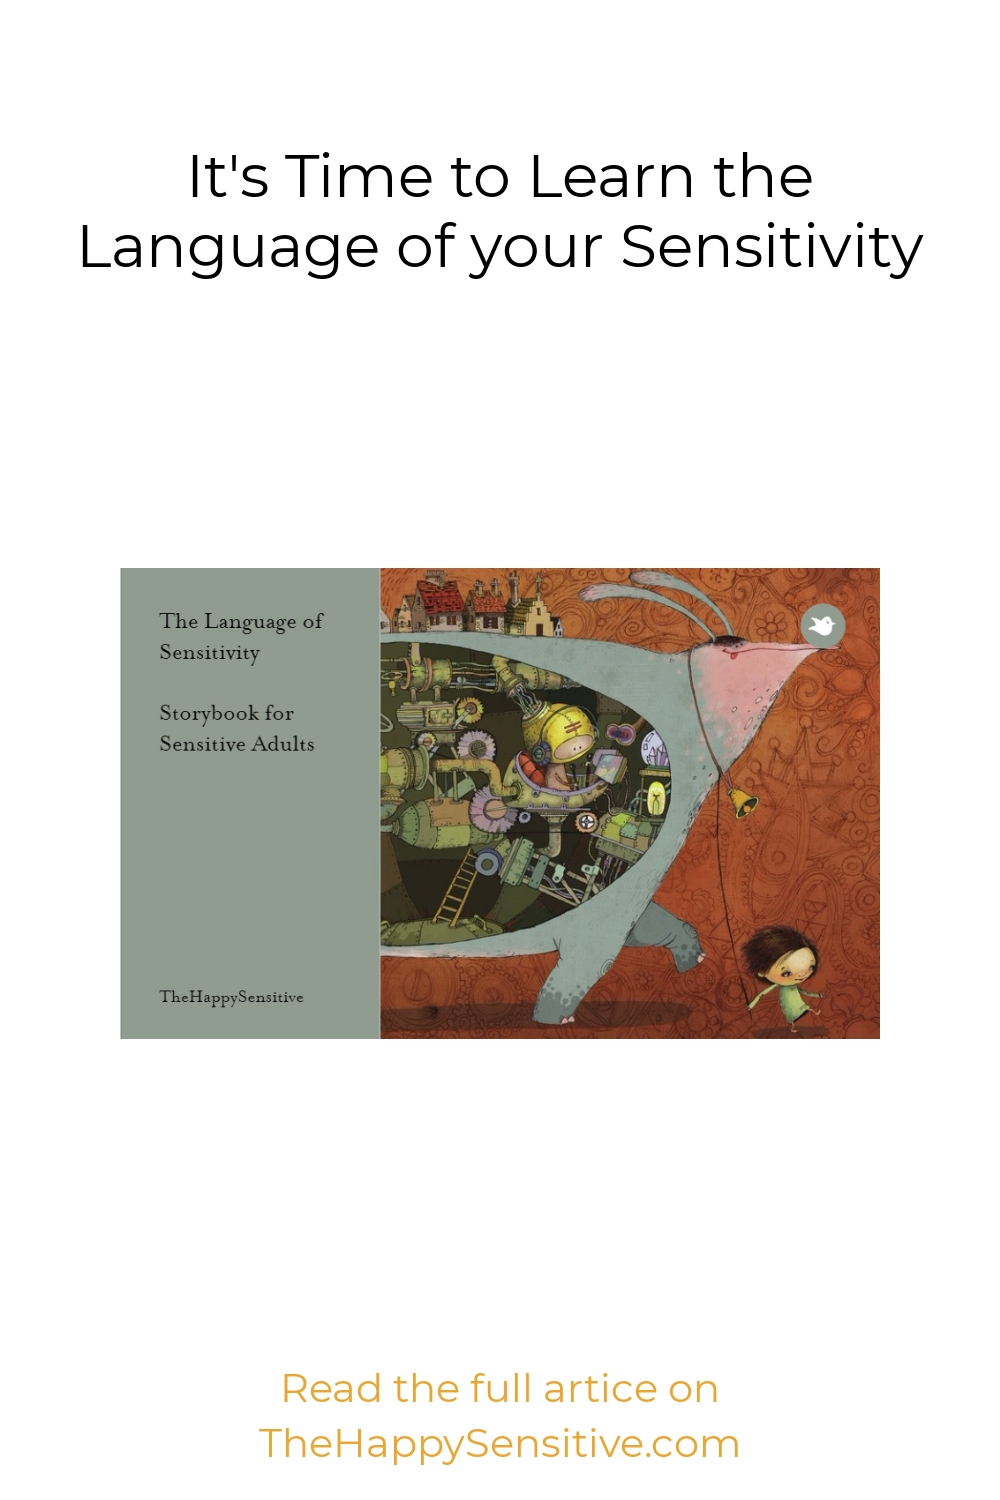 It's Time to Learn the Language of your Sensitivity